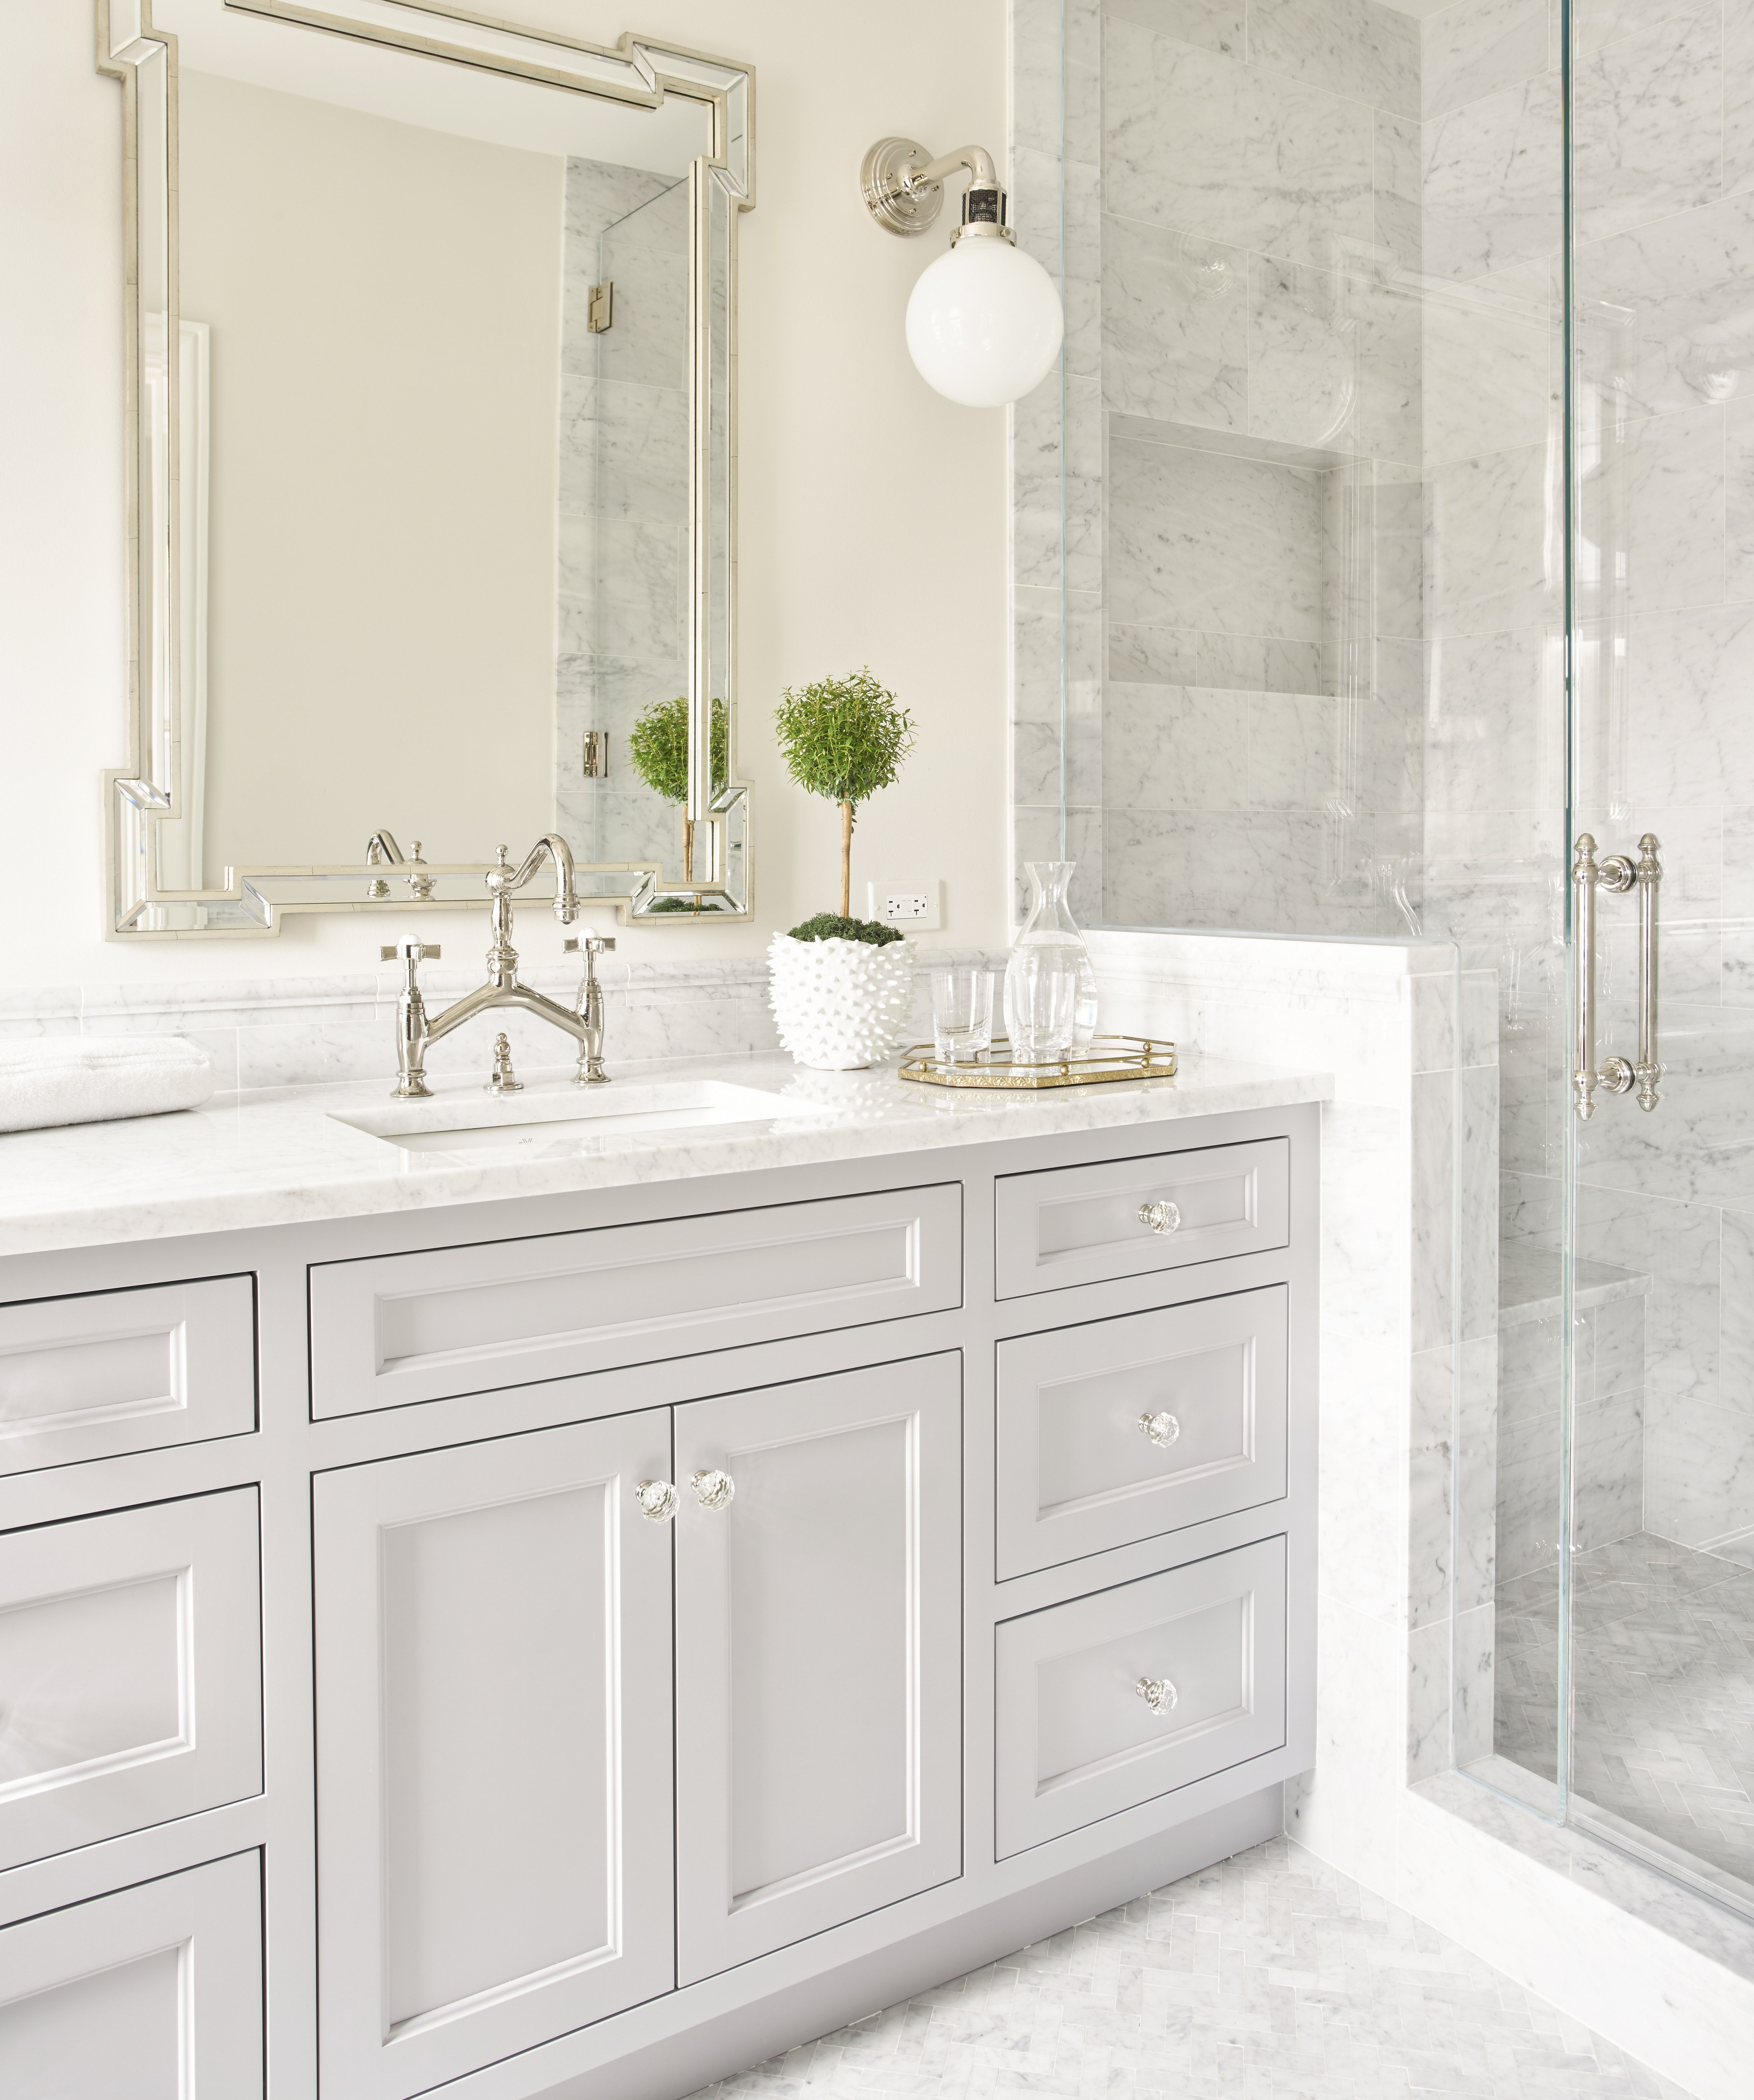 Love Fixtures And Mirror With Images Elegant Bathroom White